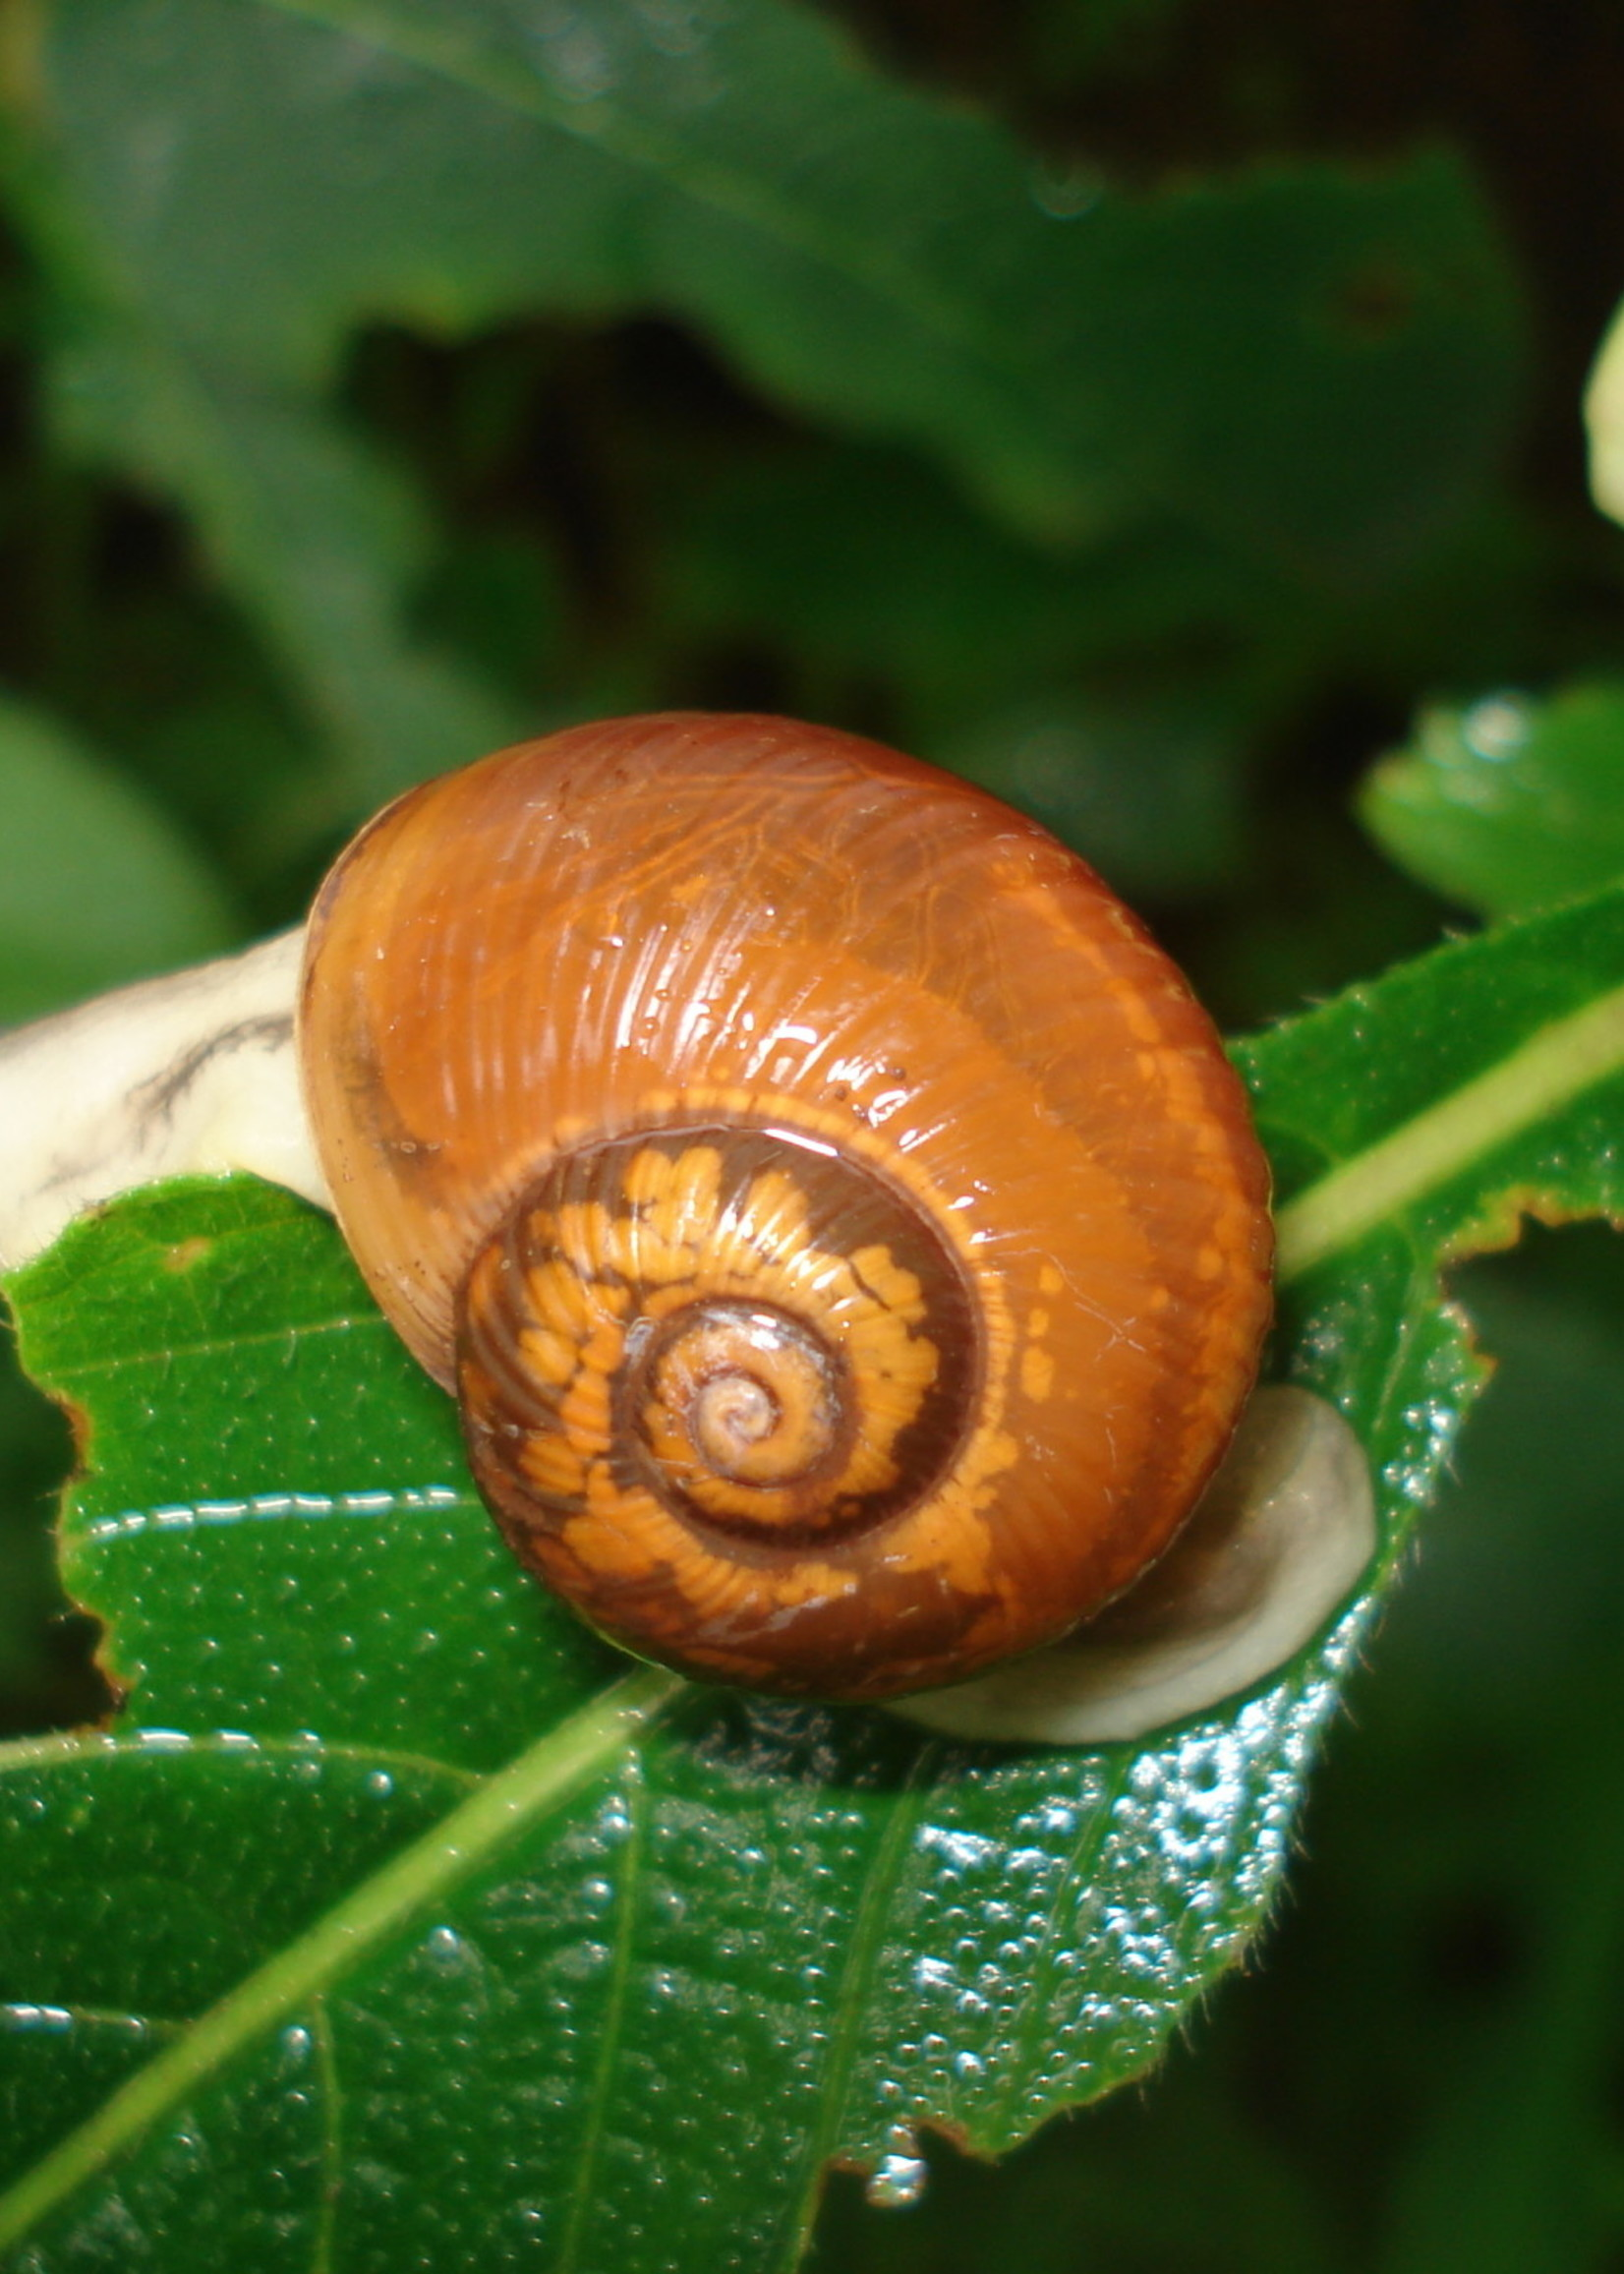 Insect, Snail